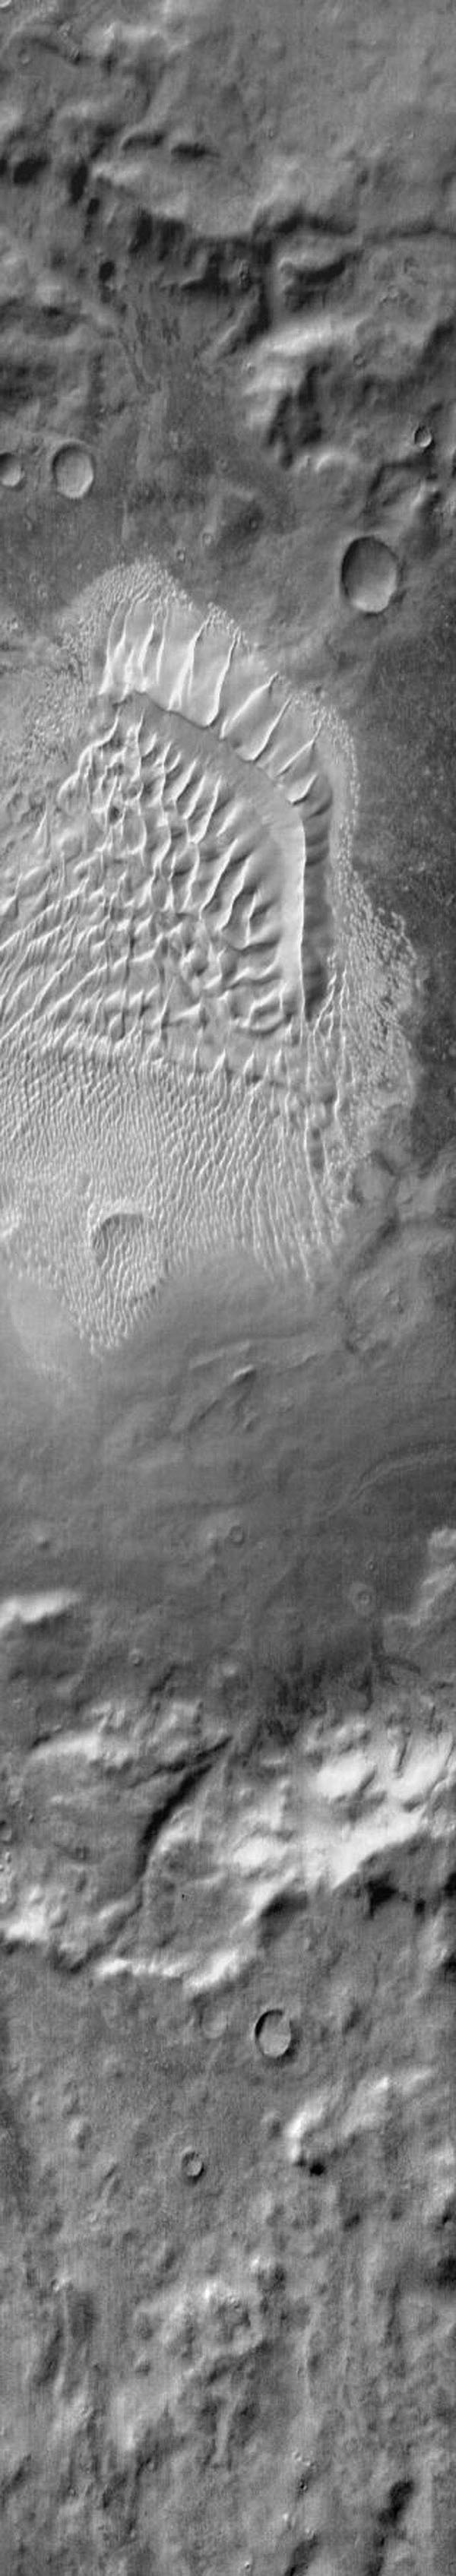 This image from NASA's Mars Odyssey shows a complex dune field located on the floor of Russell Crater on Mars. The bright tone indicates the warmth of the dunes compared to the surrounding materials.